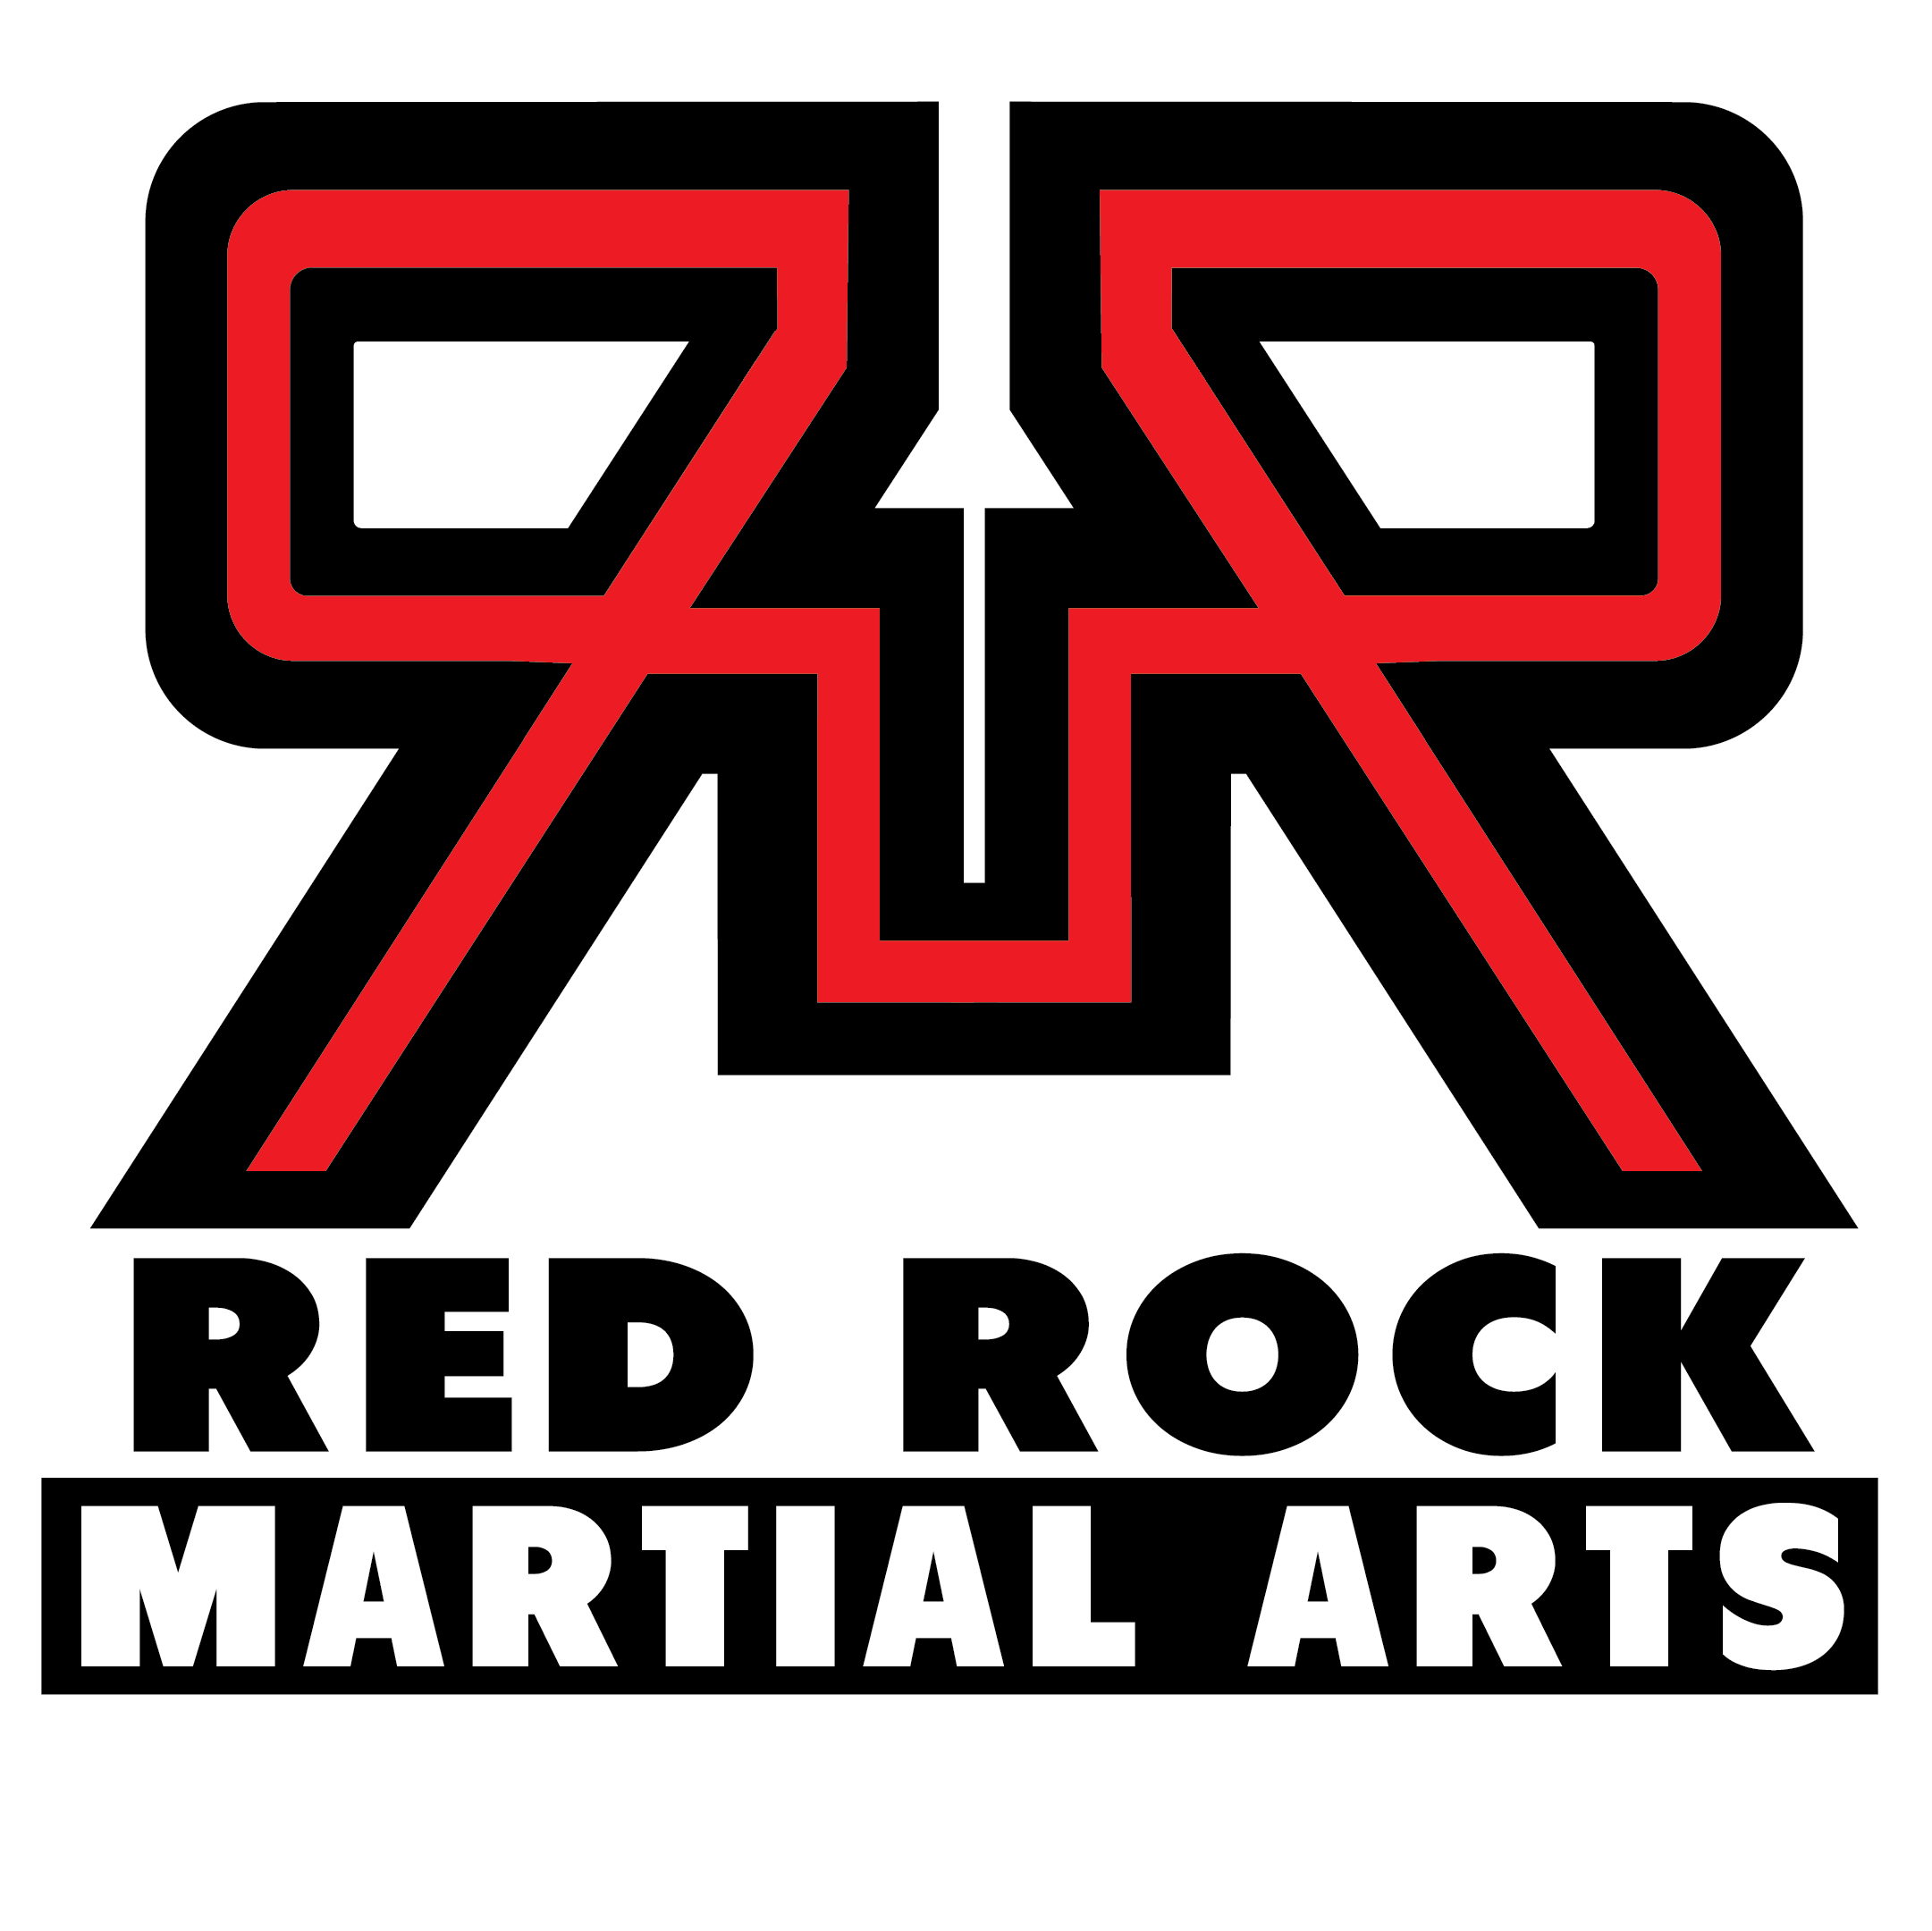 Red Rock Martial Arts